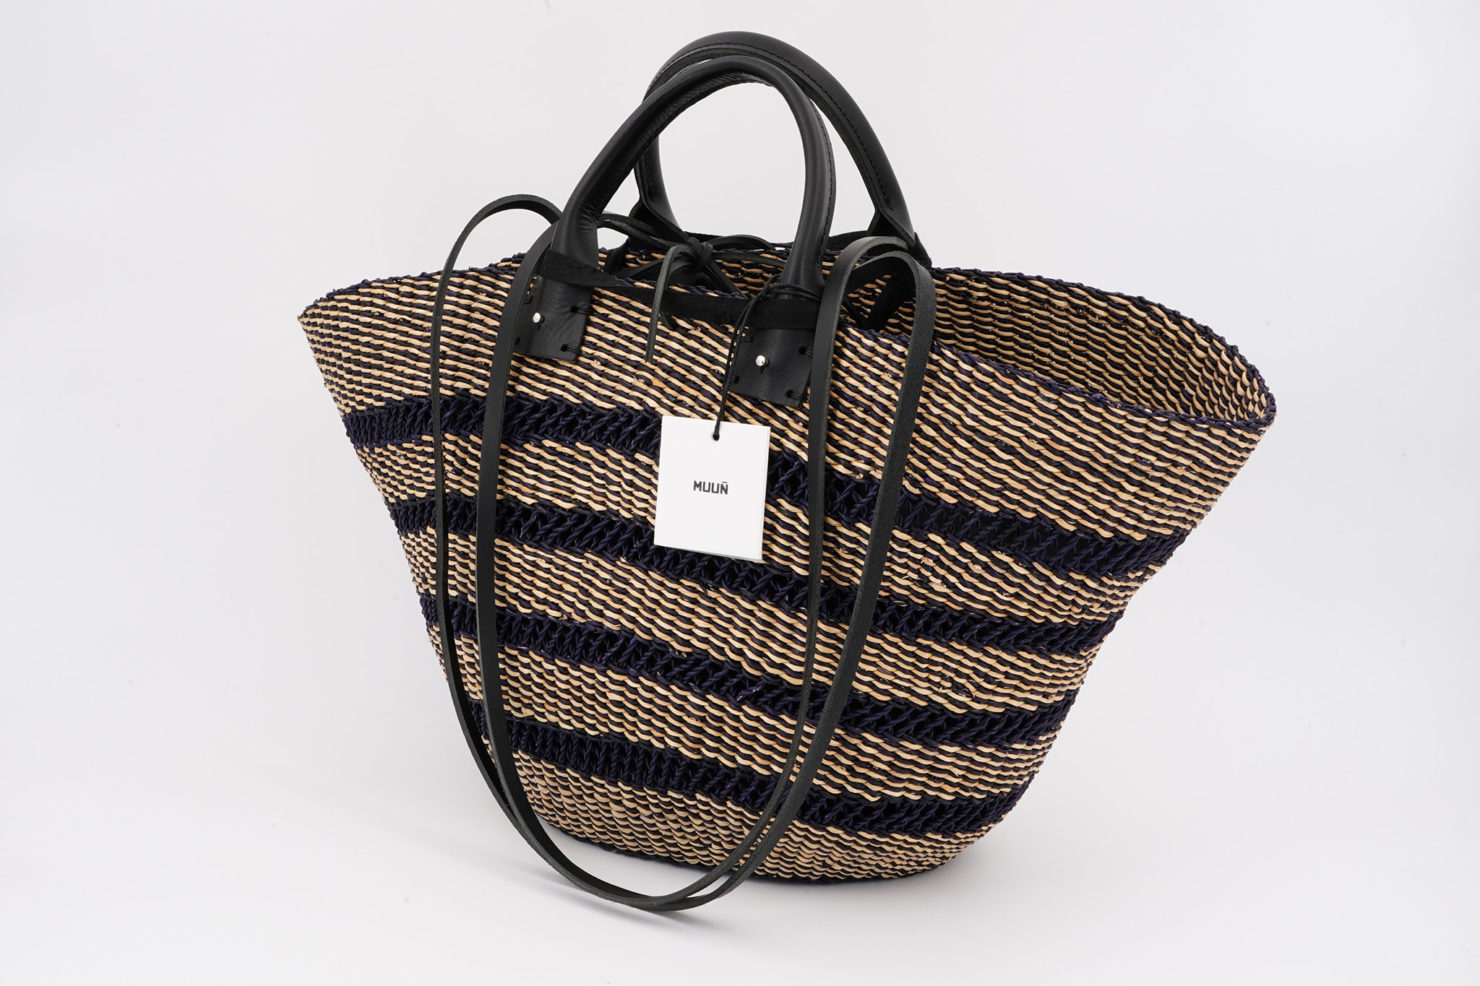 LAUREN FLOR STRAW BAG WITH REMOVABLE POUCH MUUN